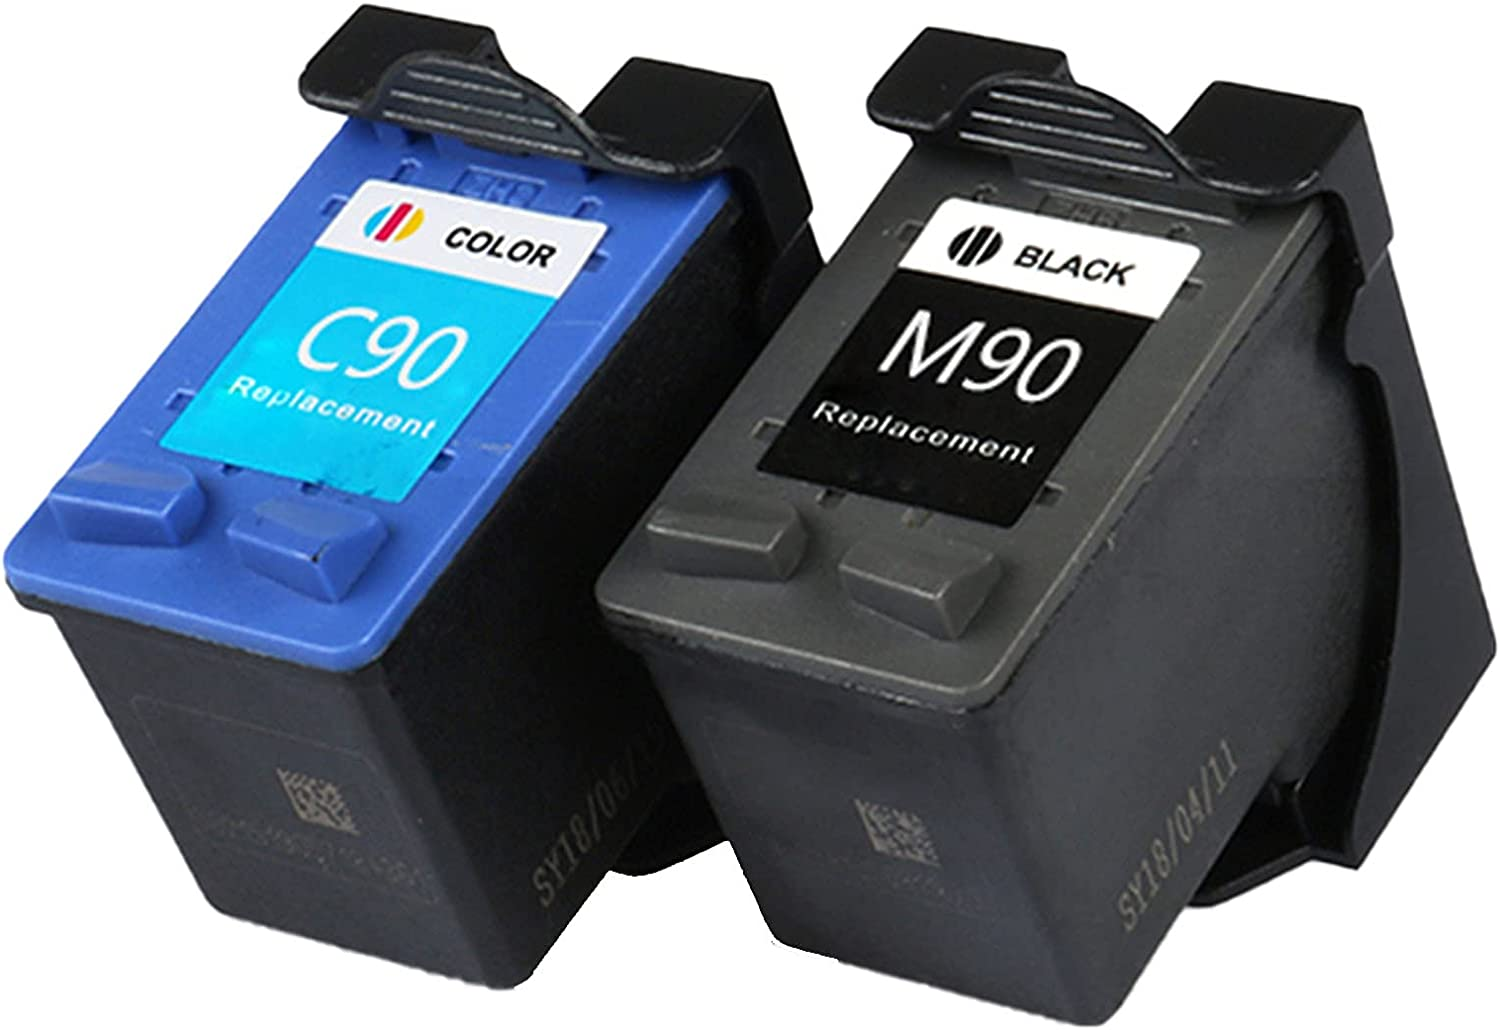 VDFHB Compatible Ink Cartridge M90 / C90 for Samsung SCX-1300/SCX-1350F/SF-450 Printer, High Page Yield 1-Set